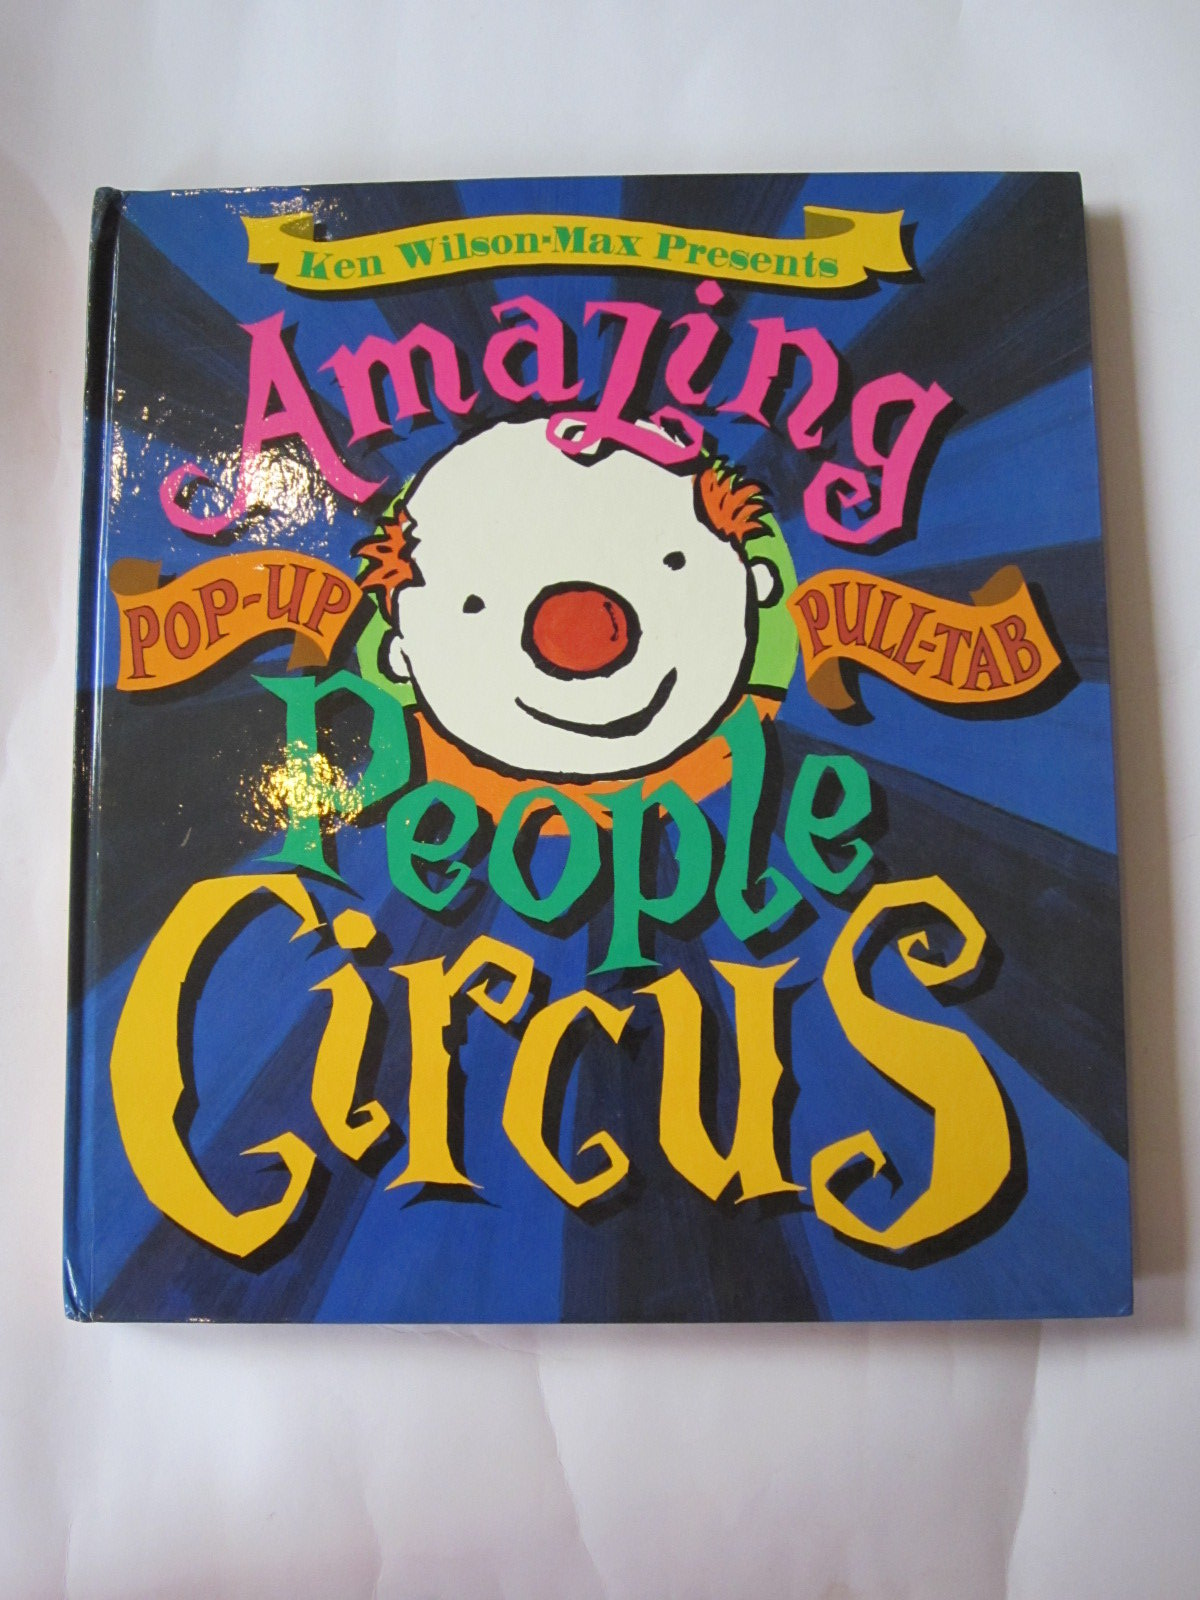 Photo of THE AMAZING PEOPLE CIRCUS written by Wilson-Max, Ken illustrated by Wilson-Max, Ken published by David Bennett Books Ltd. (STOCK CODE: 1308056)  for sale by Stella & Rose's Books